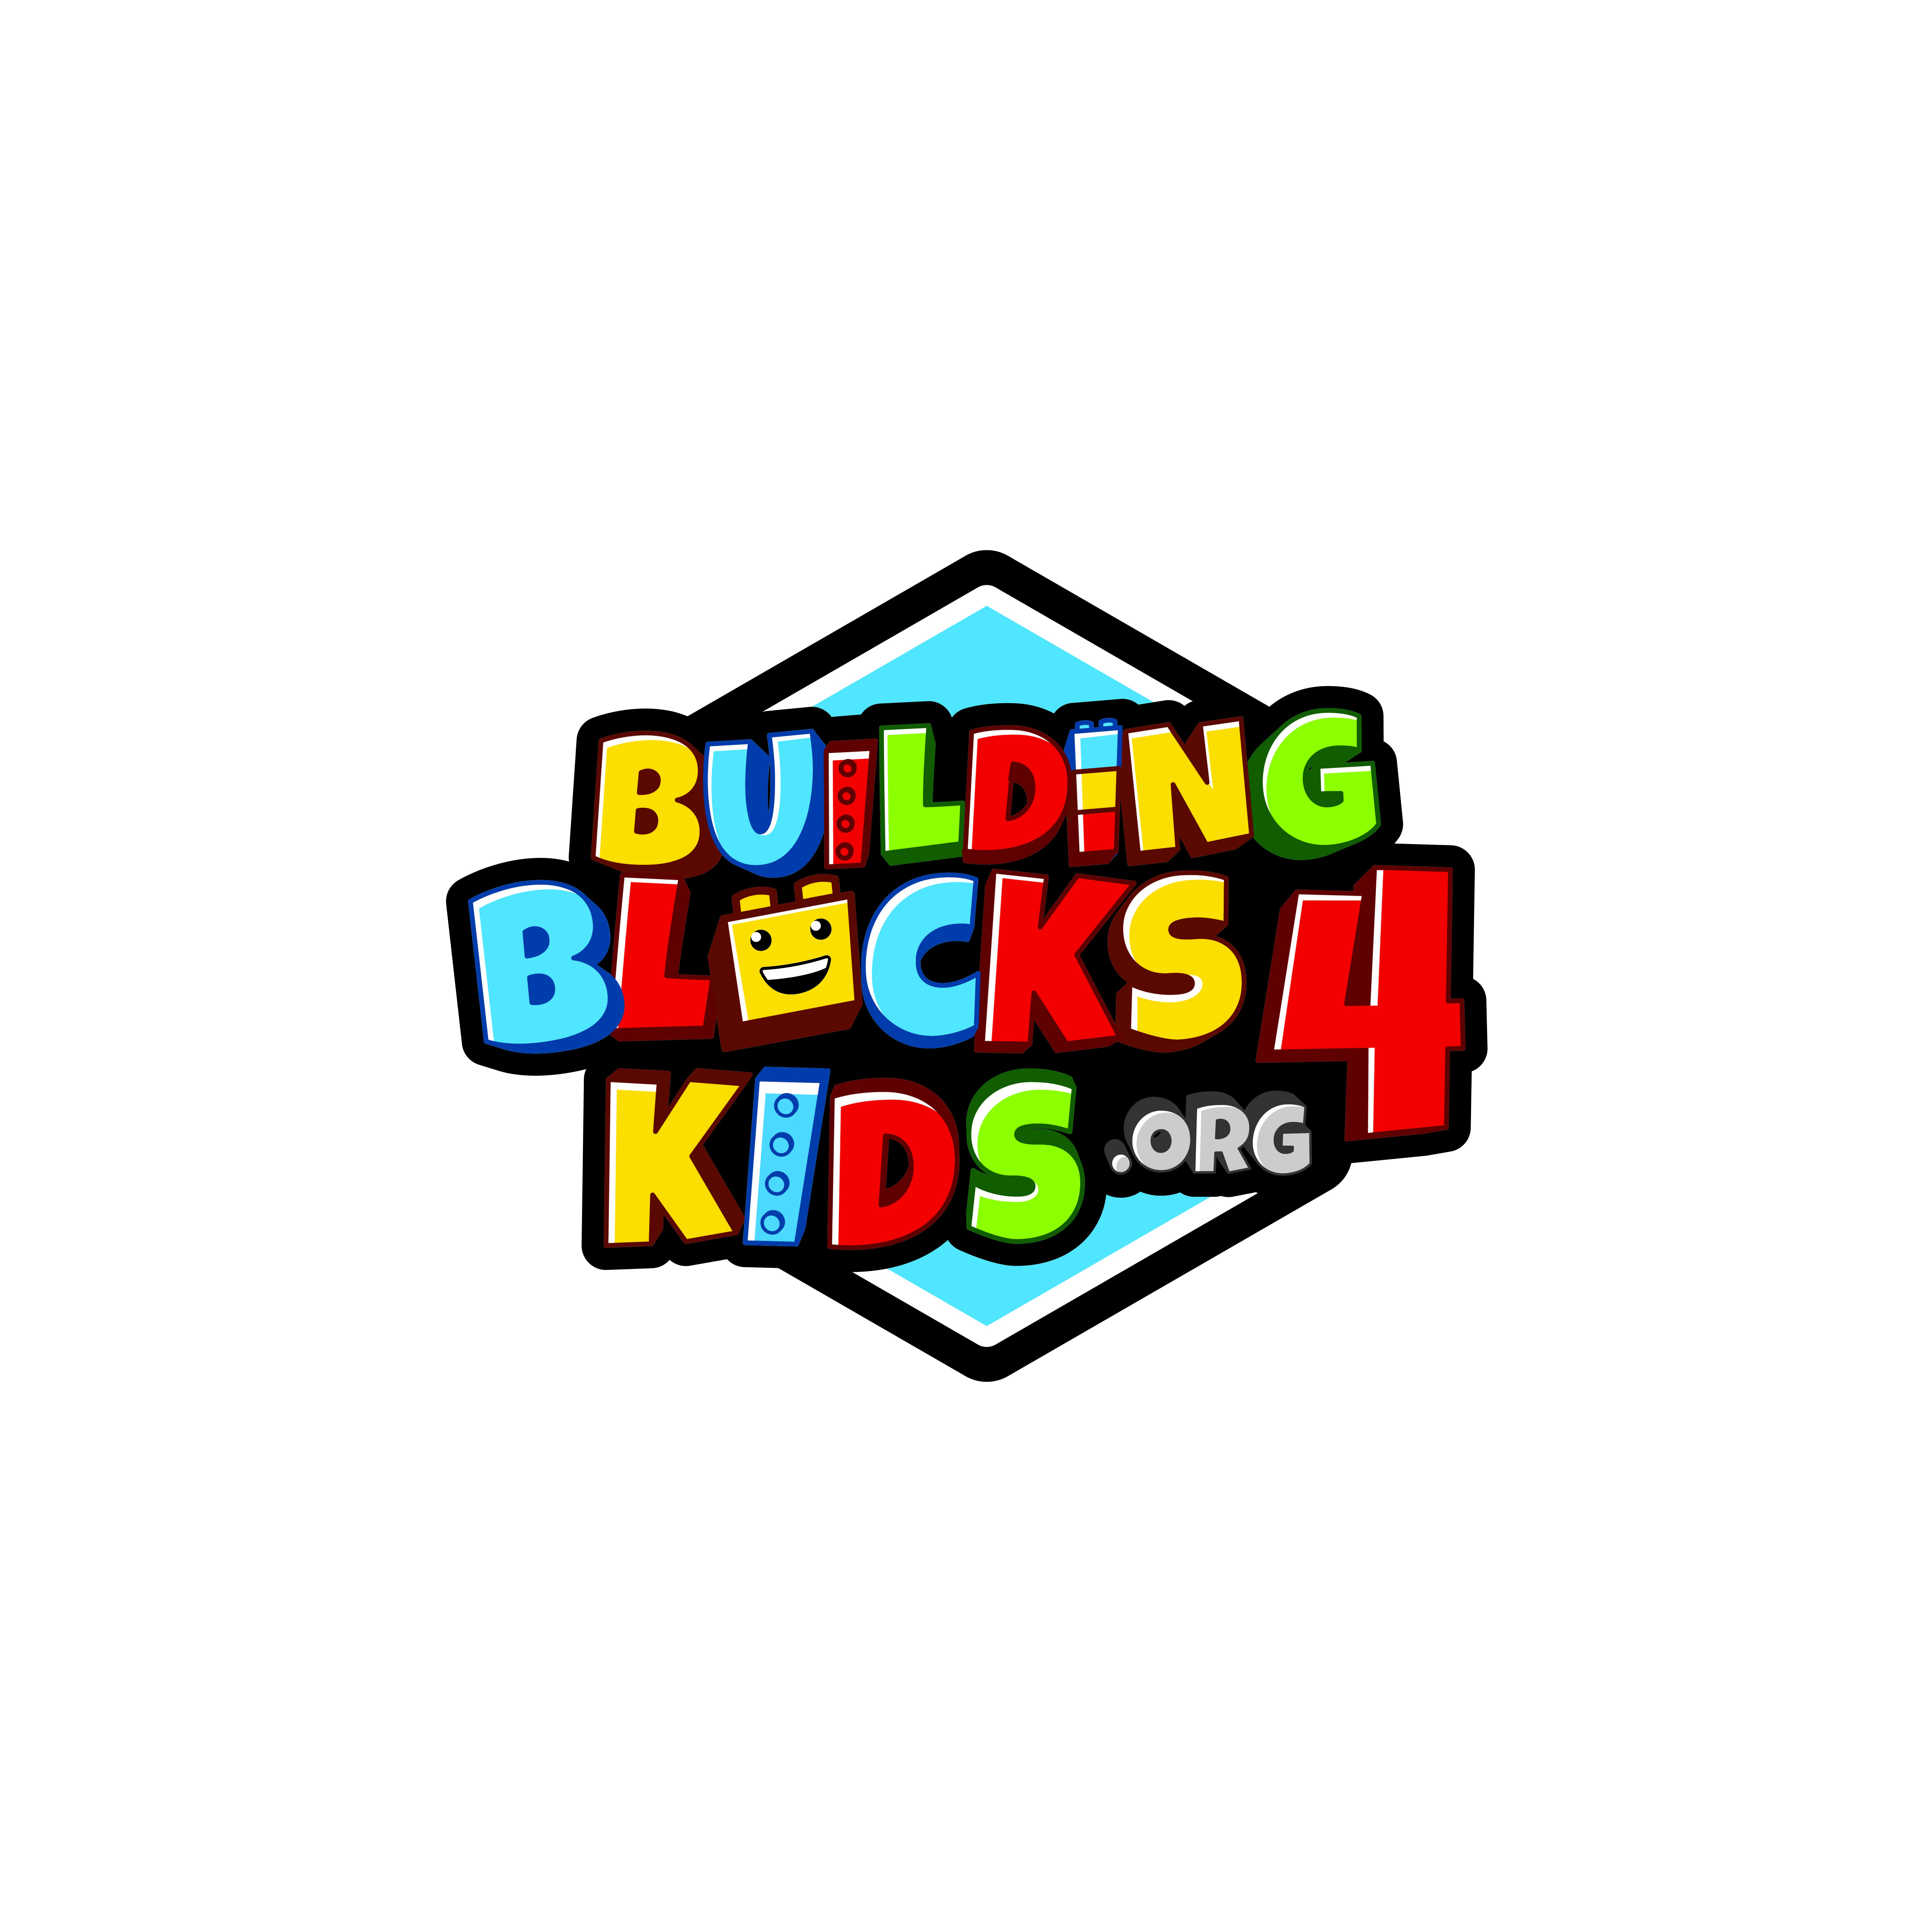 Do it for the kids :) Kids LEGO Non Profit Looking for Eye Catching Design